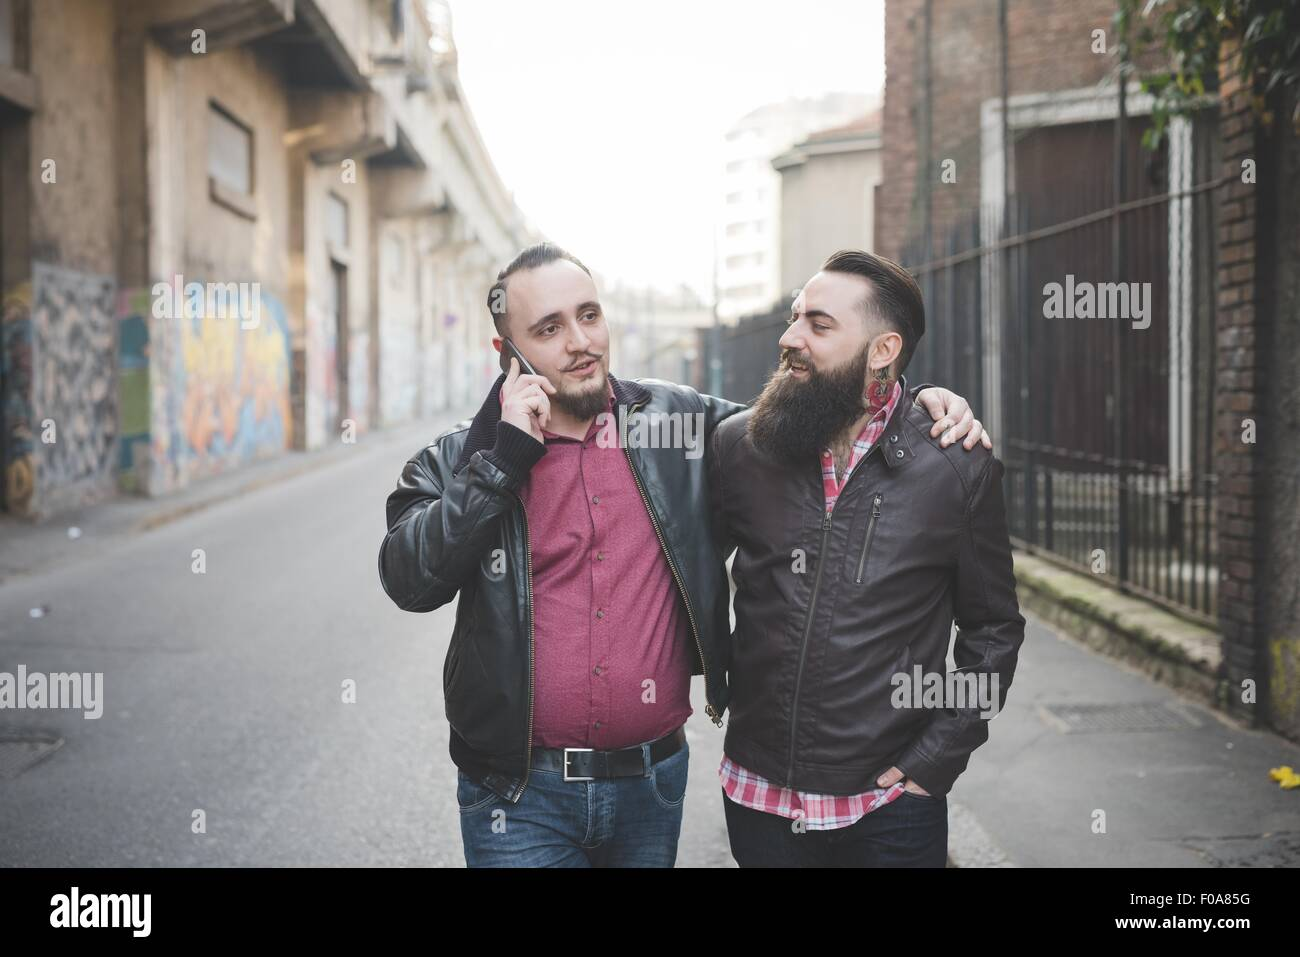 Gay couple walking on street Stock Photo